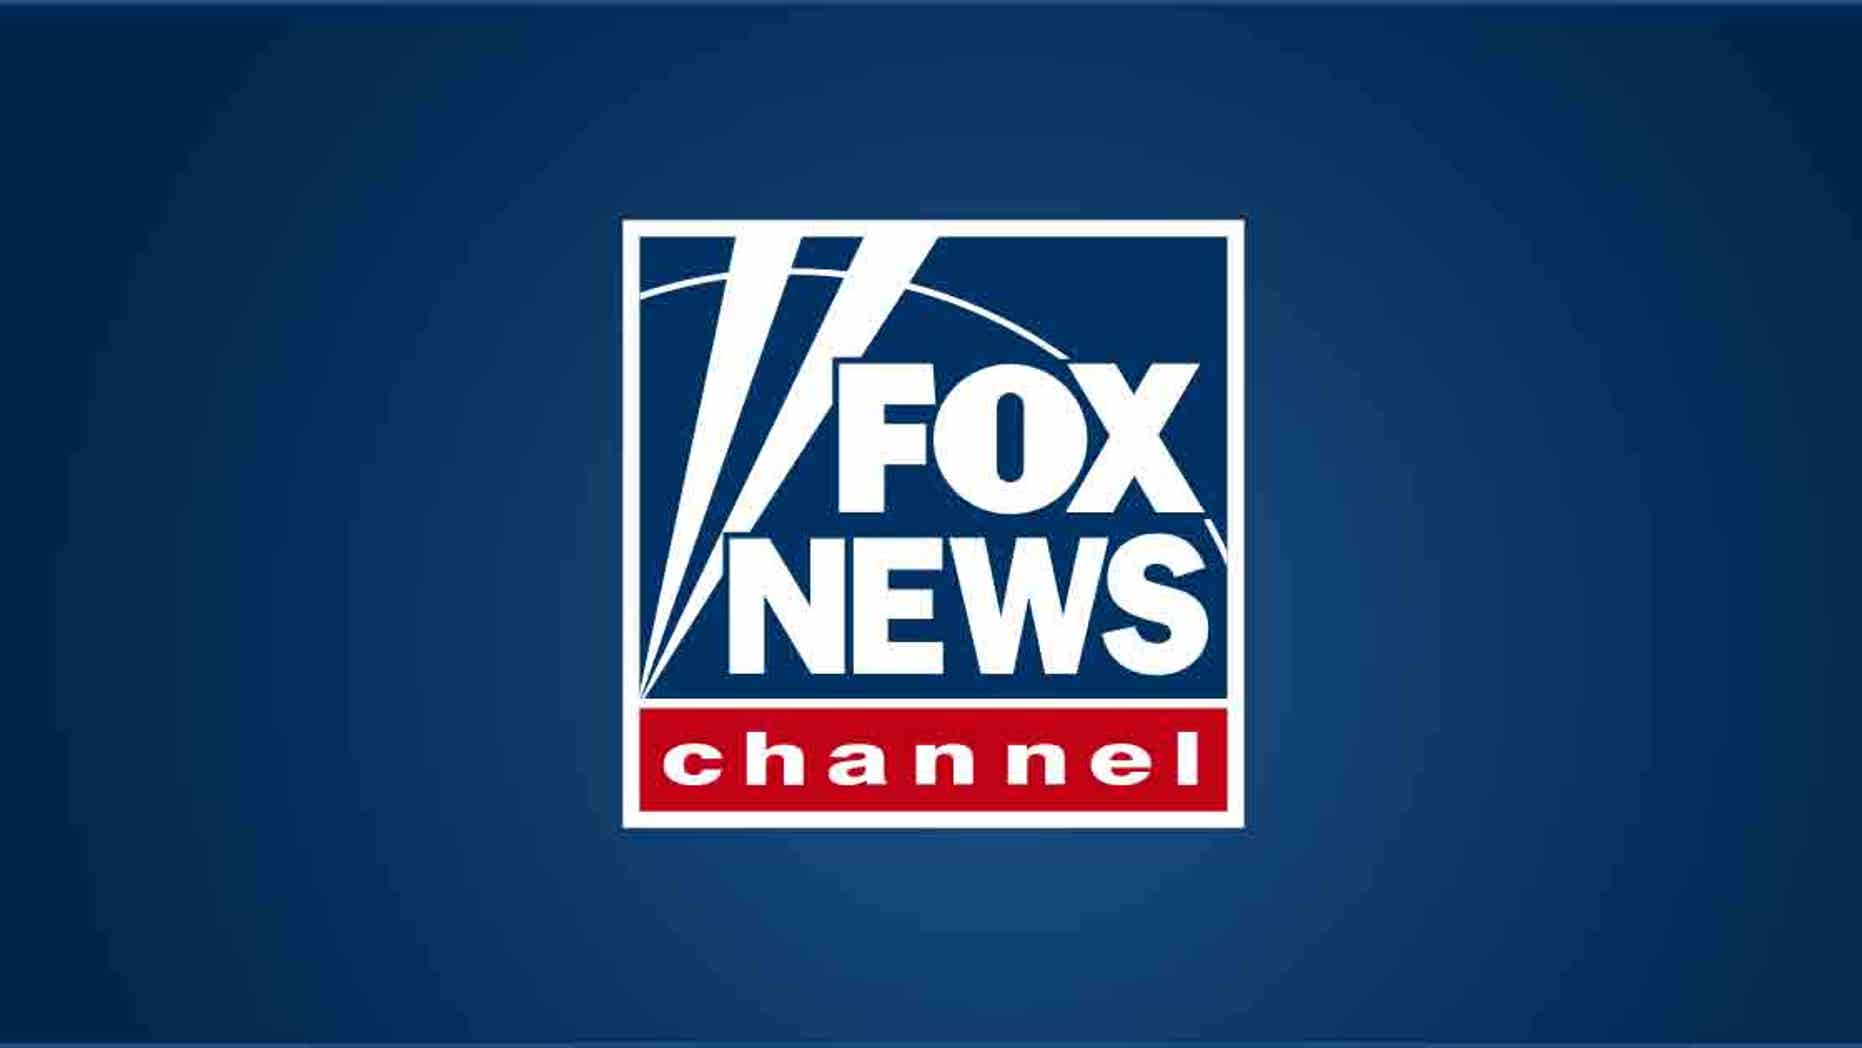 Westlake Legal Group fox-news-channel-logo Today on Fox News: Jan. 27, 2020 fox-news/media fox-news/entertainment/media fox news fnc/media fnc c83c0da9-08bc-5579-9d68-5fcbb1367d90 article